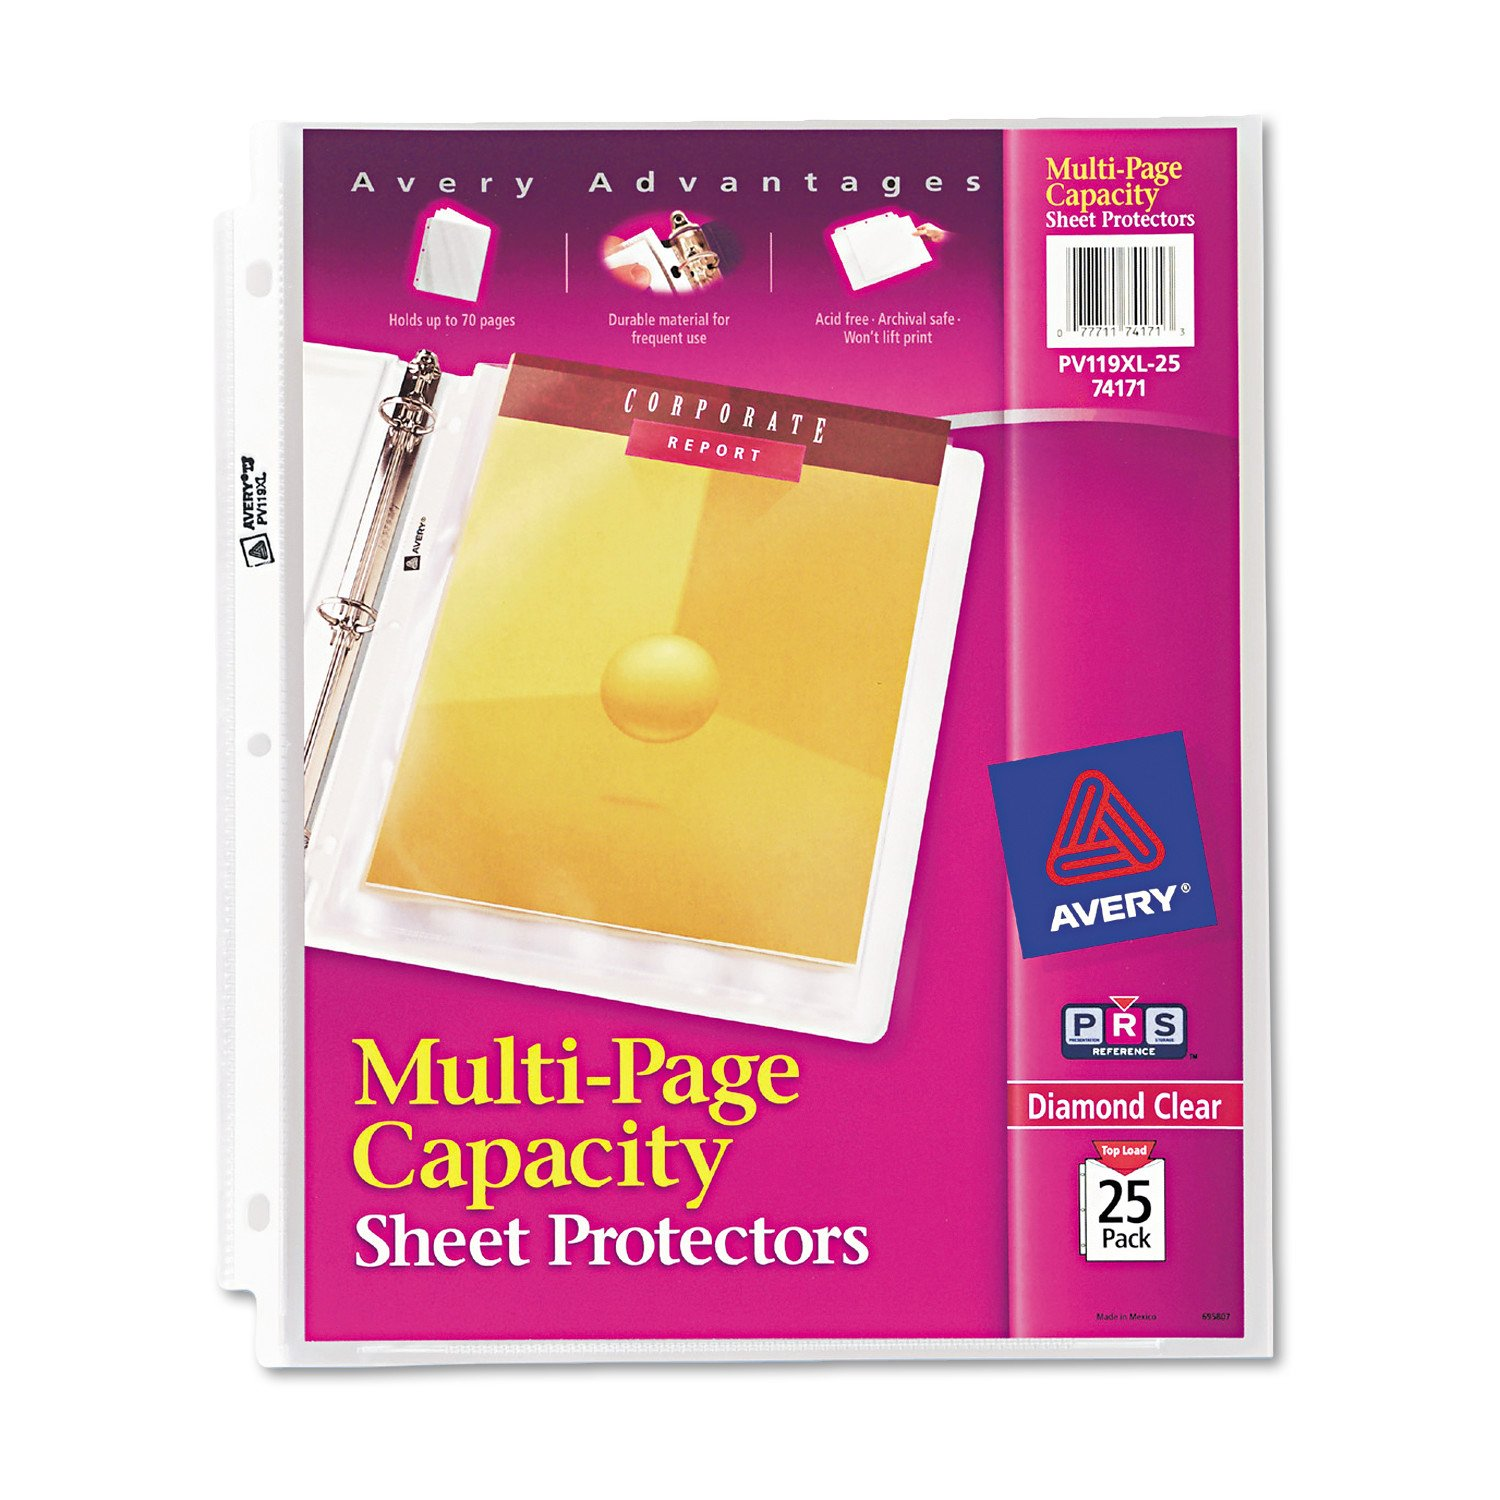 Avery Diamond Clear Multi-Page Capacity Sheet Protectors, PVC Free, Pack of 25 (74171)